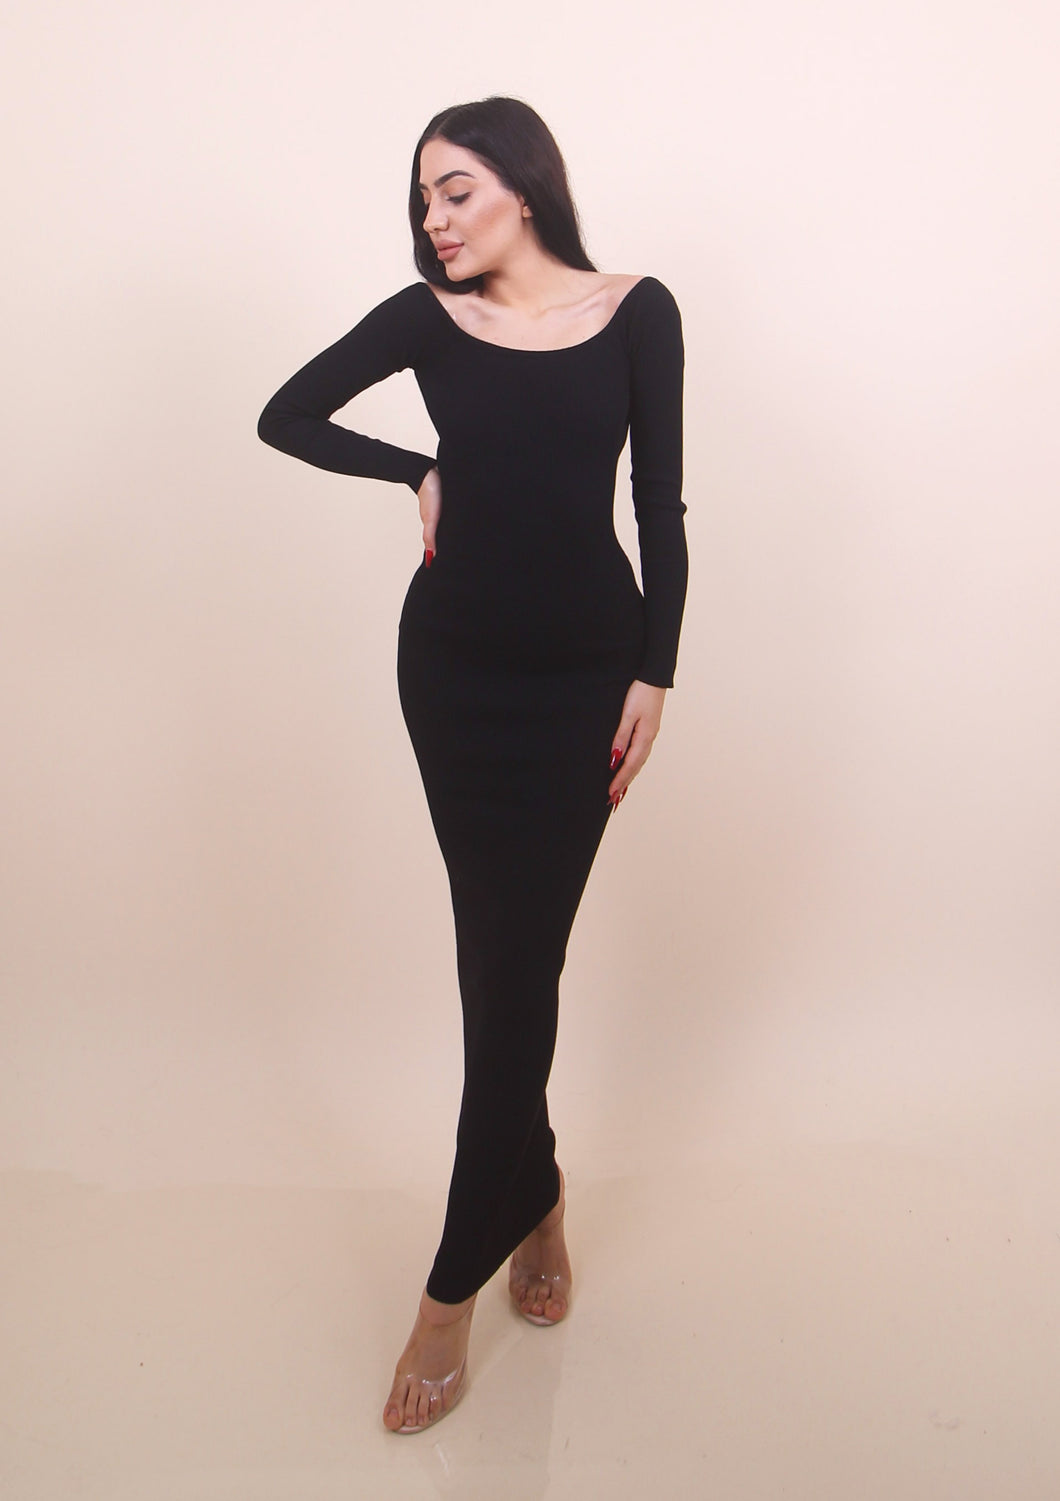 'SAMANTHA' Dress - Black